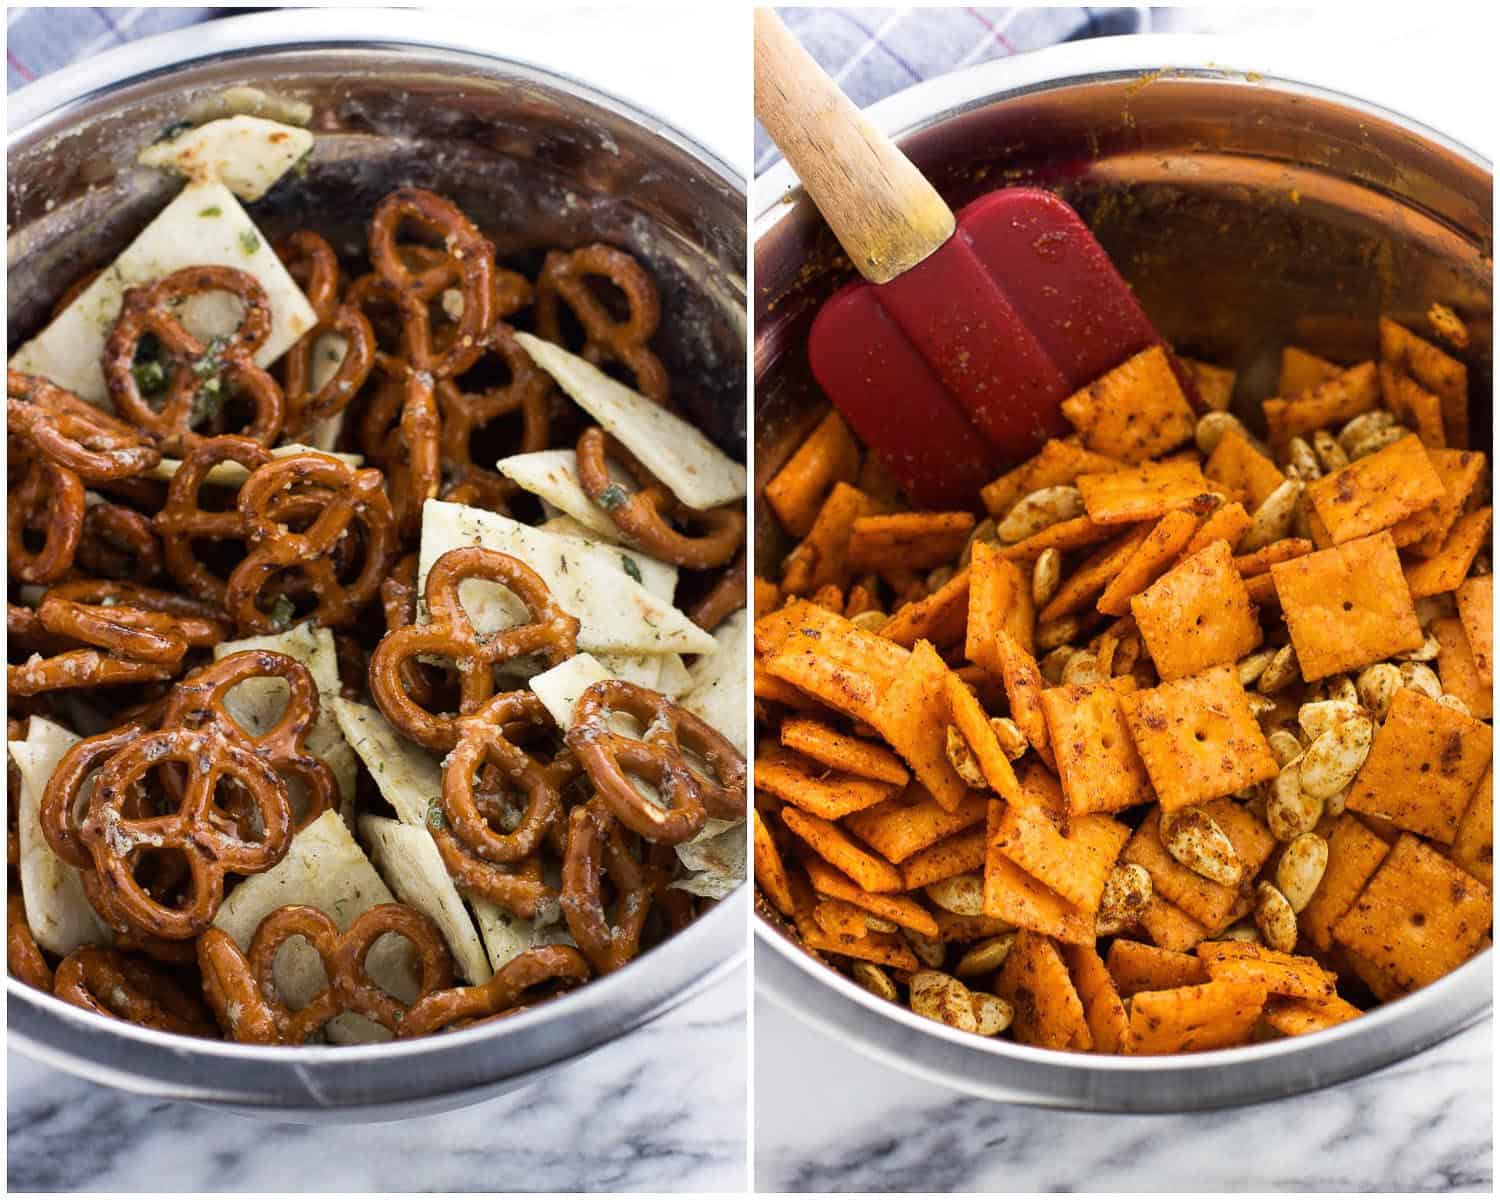 A side-by-side image collage of two bowls, one filled with tortilla strips and pretzels and the other with cheese crackers and pumpkin seeds